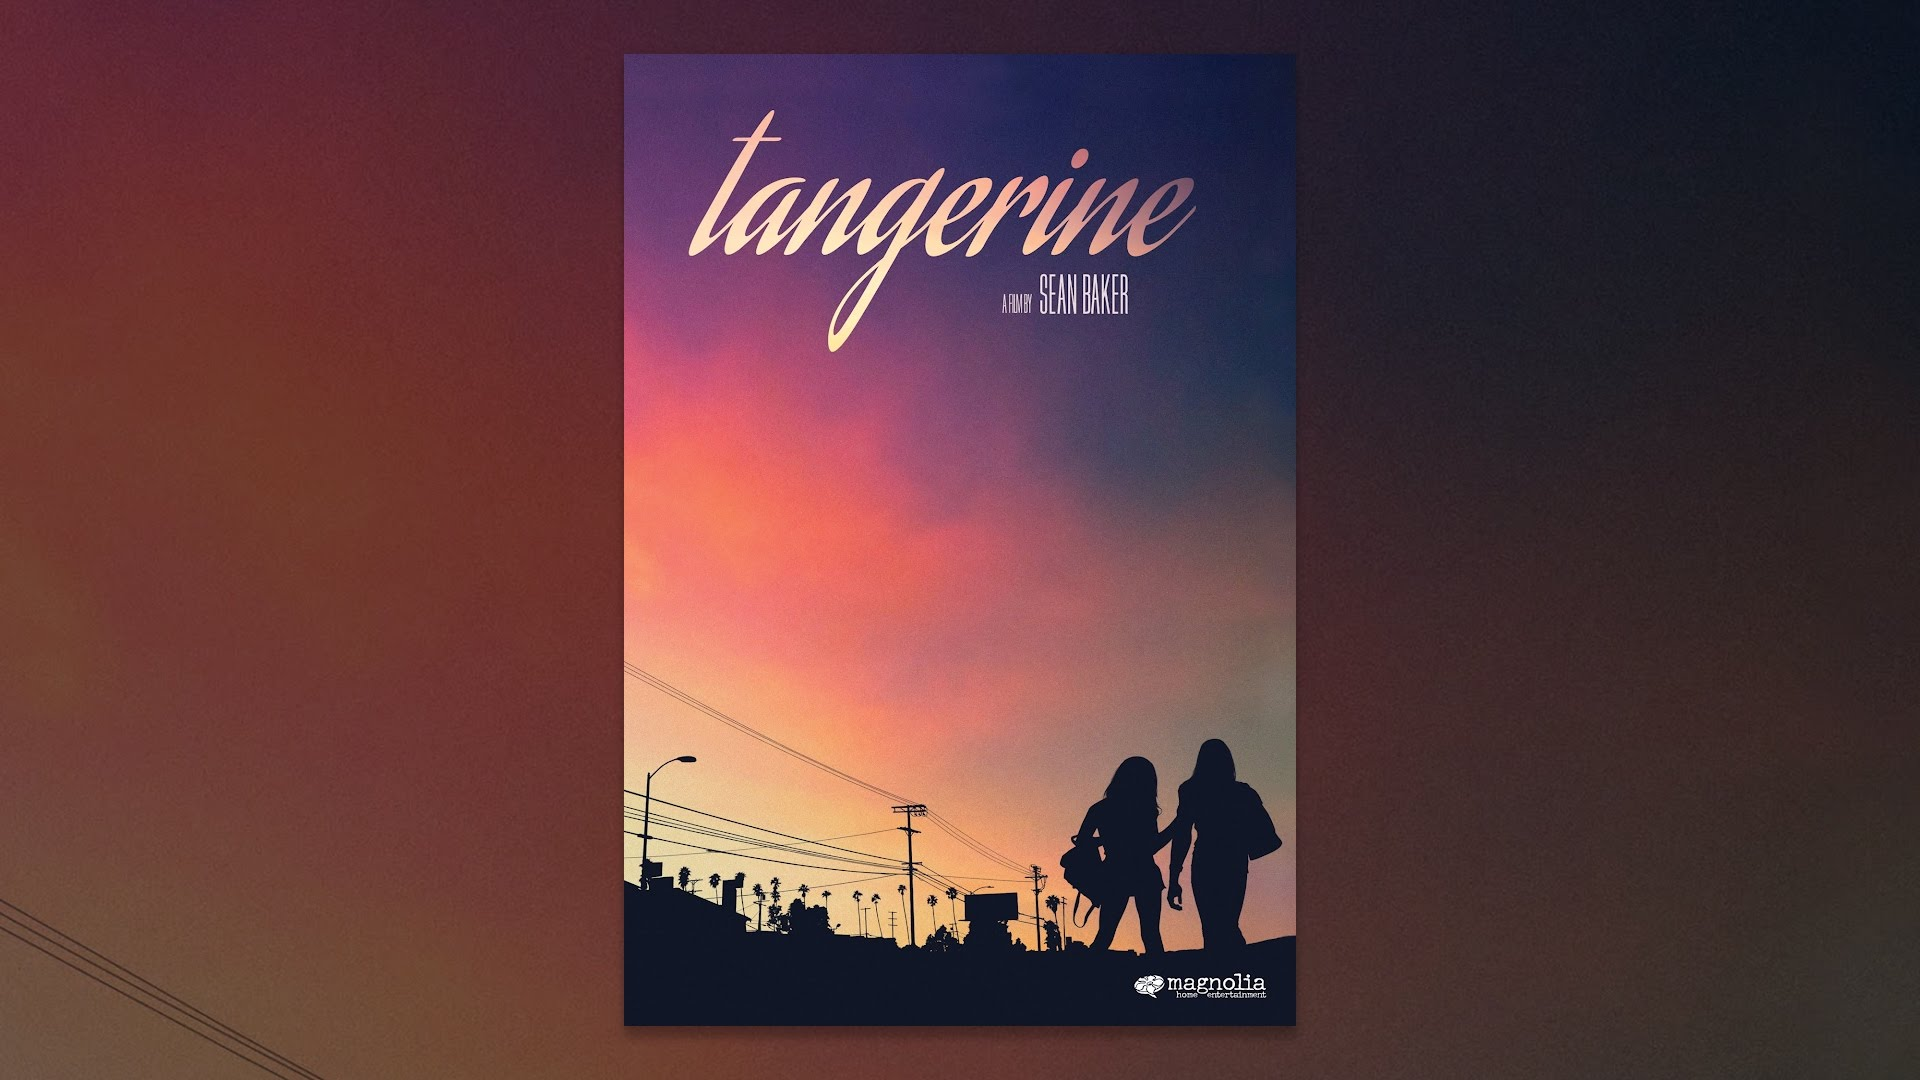 tangerine youtube